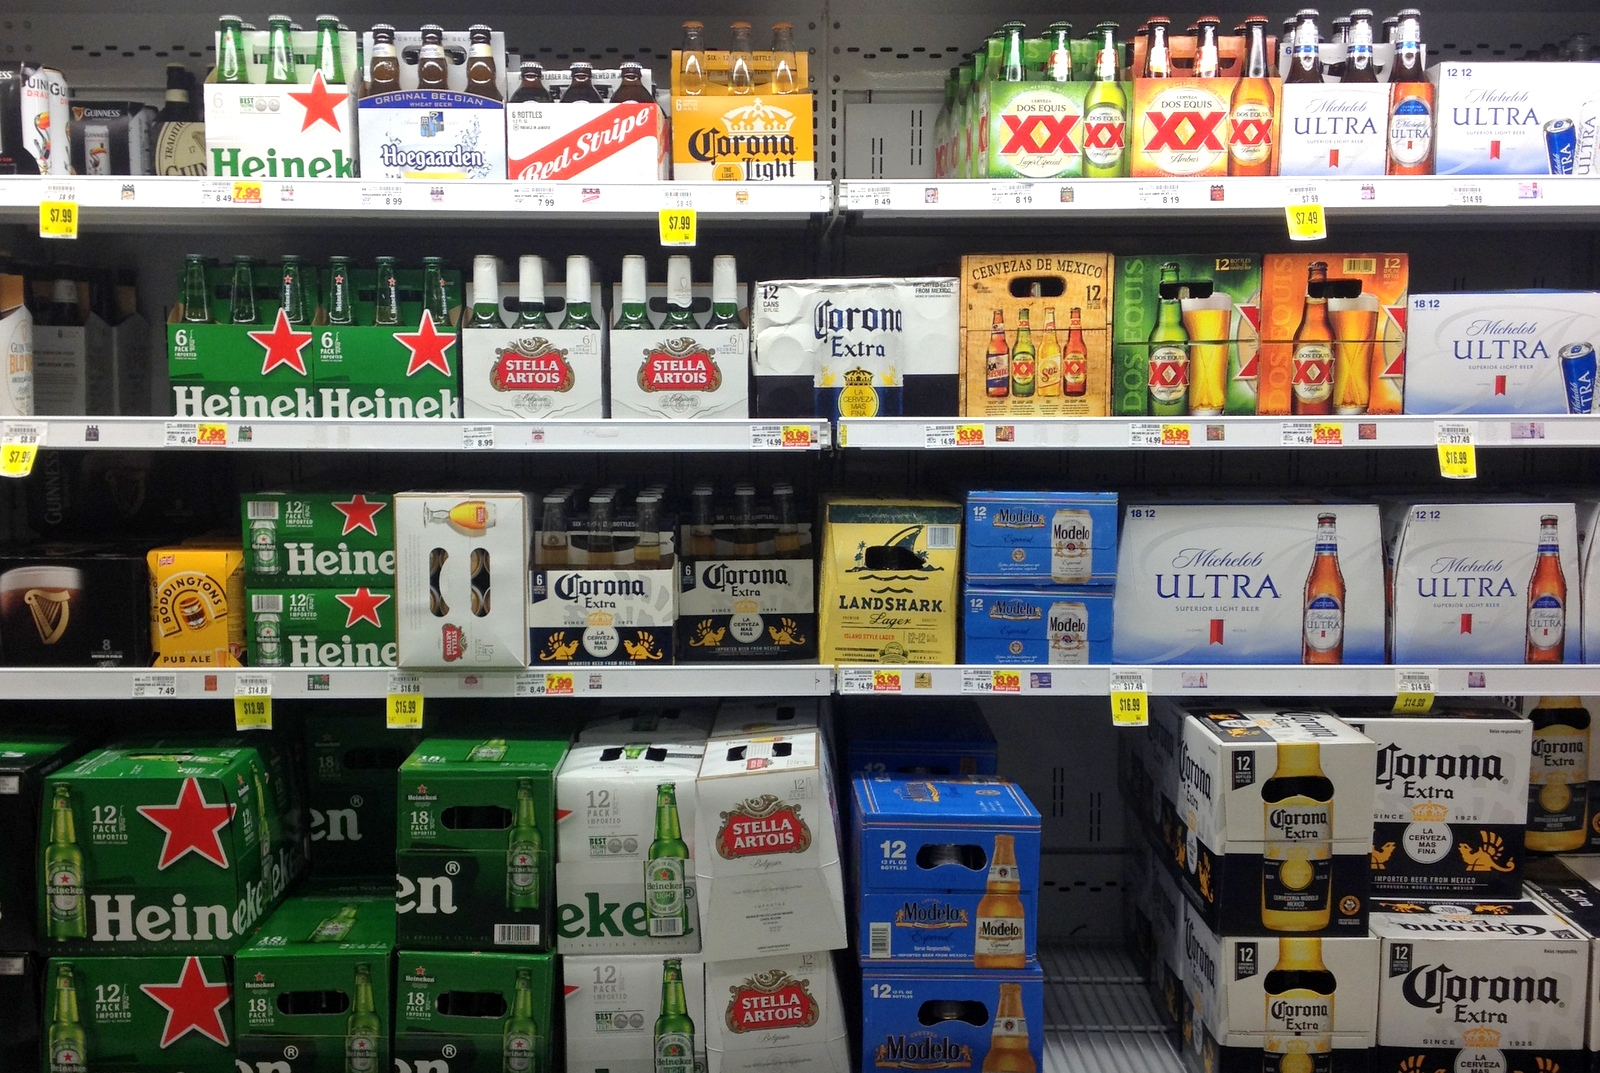 Corona and Modelo display